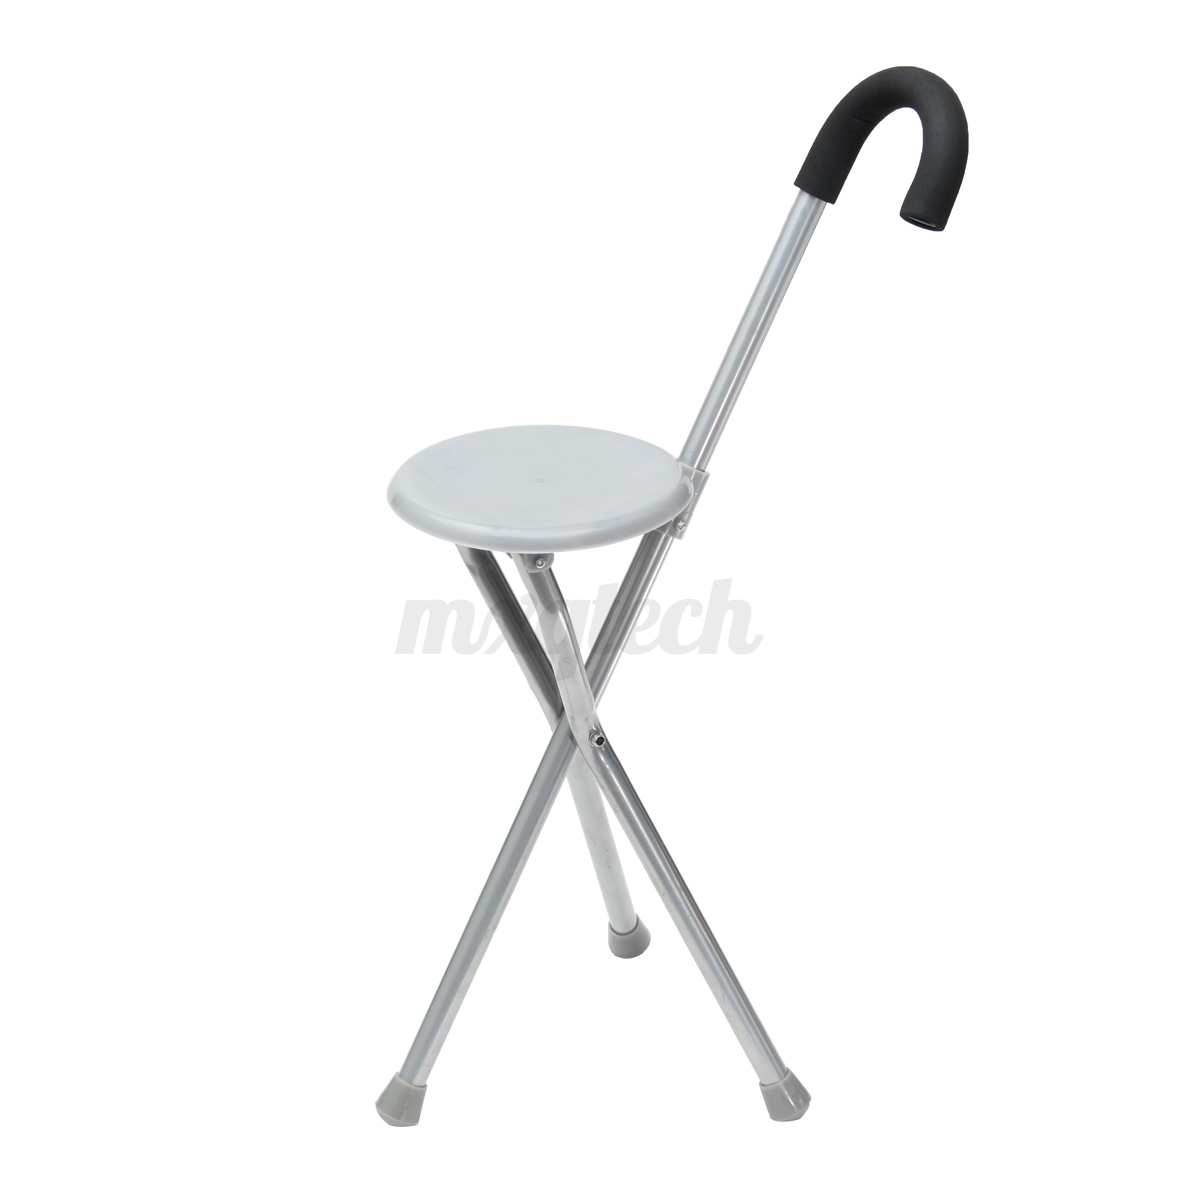 Walking Chair Folding Tripod Cane Hiking Chair Portable Walking Stick